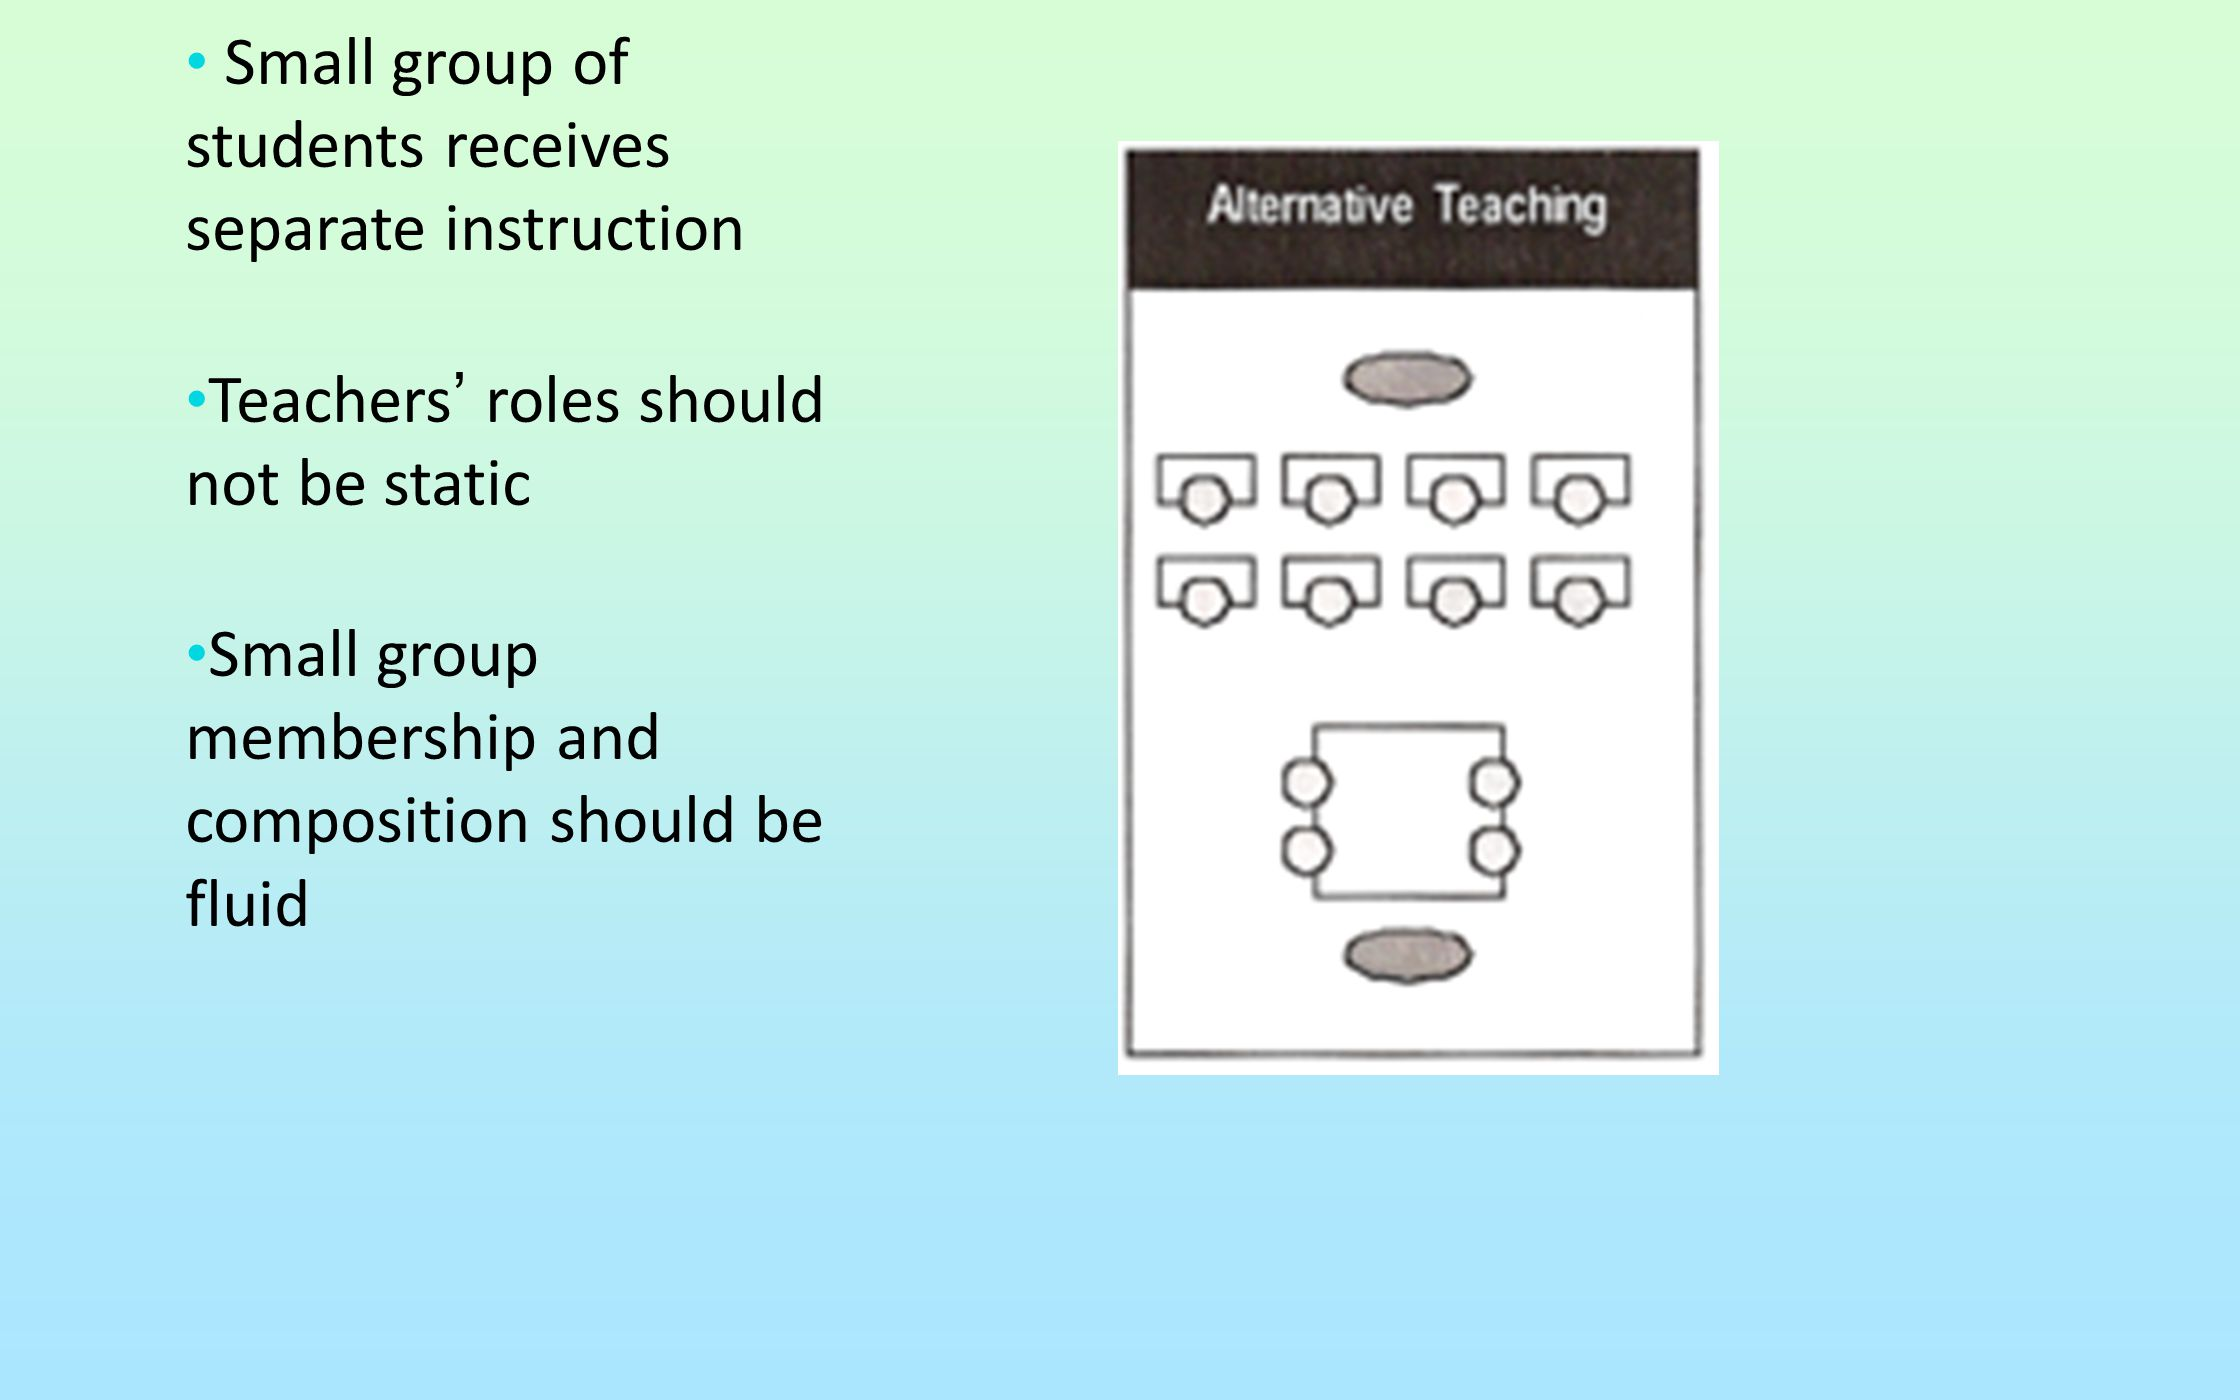 Small group of students receives separate instruction Teachers' roles should not be static Small group membership and composition should be fluid